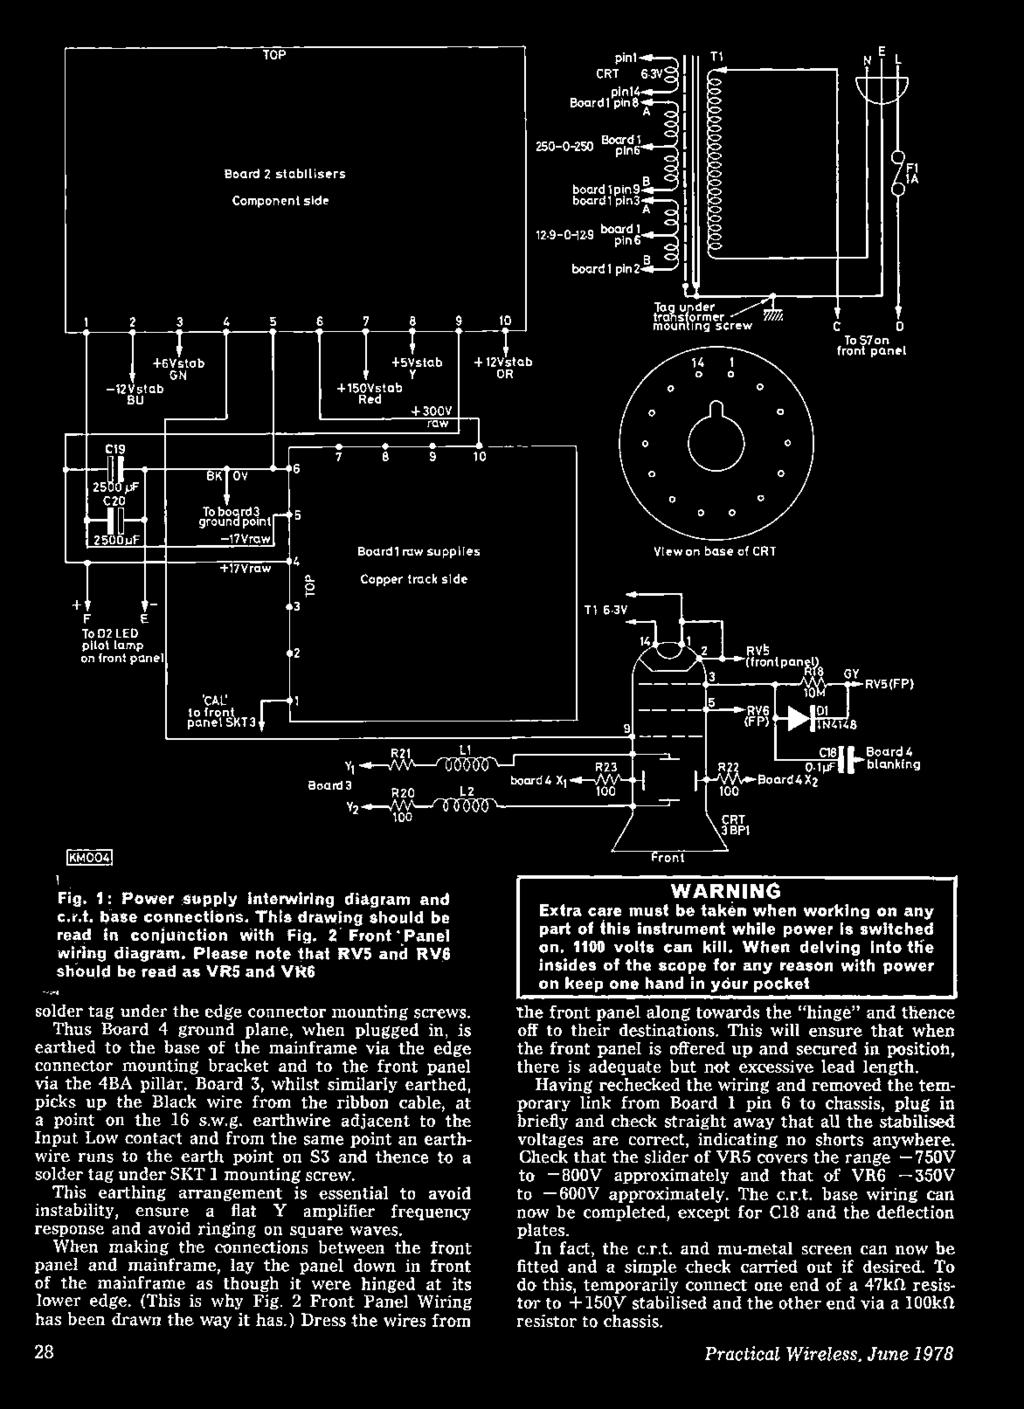 Australia New Zealand South Africa Malaysia Also Simple Darkroom Seven Segment Display Circuit With The 4511 Decoder And 4029 Dsl Pin Board Pln2 1 B 2 3 F